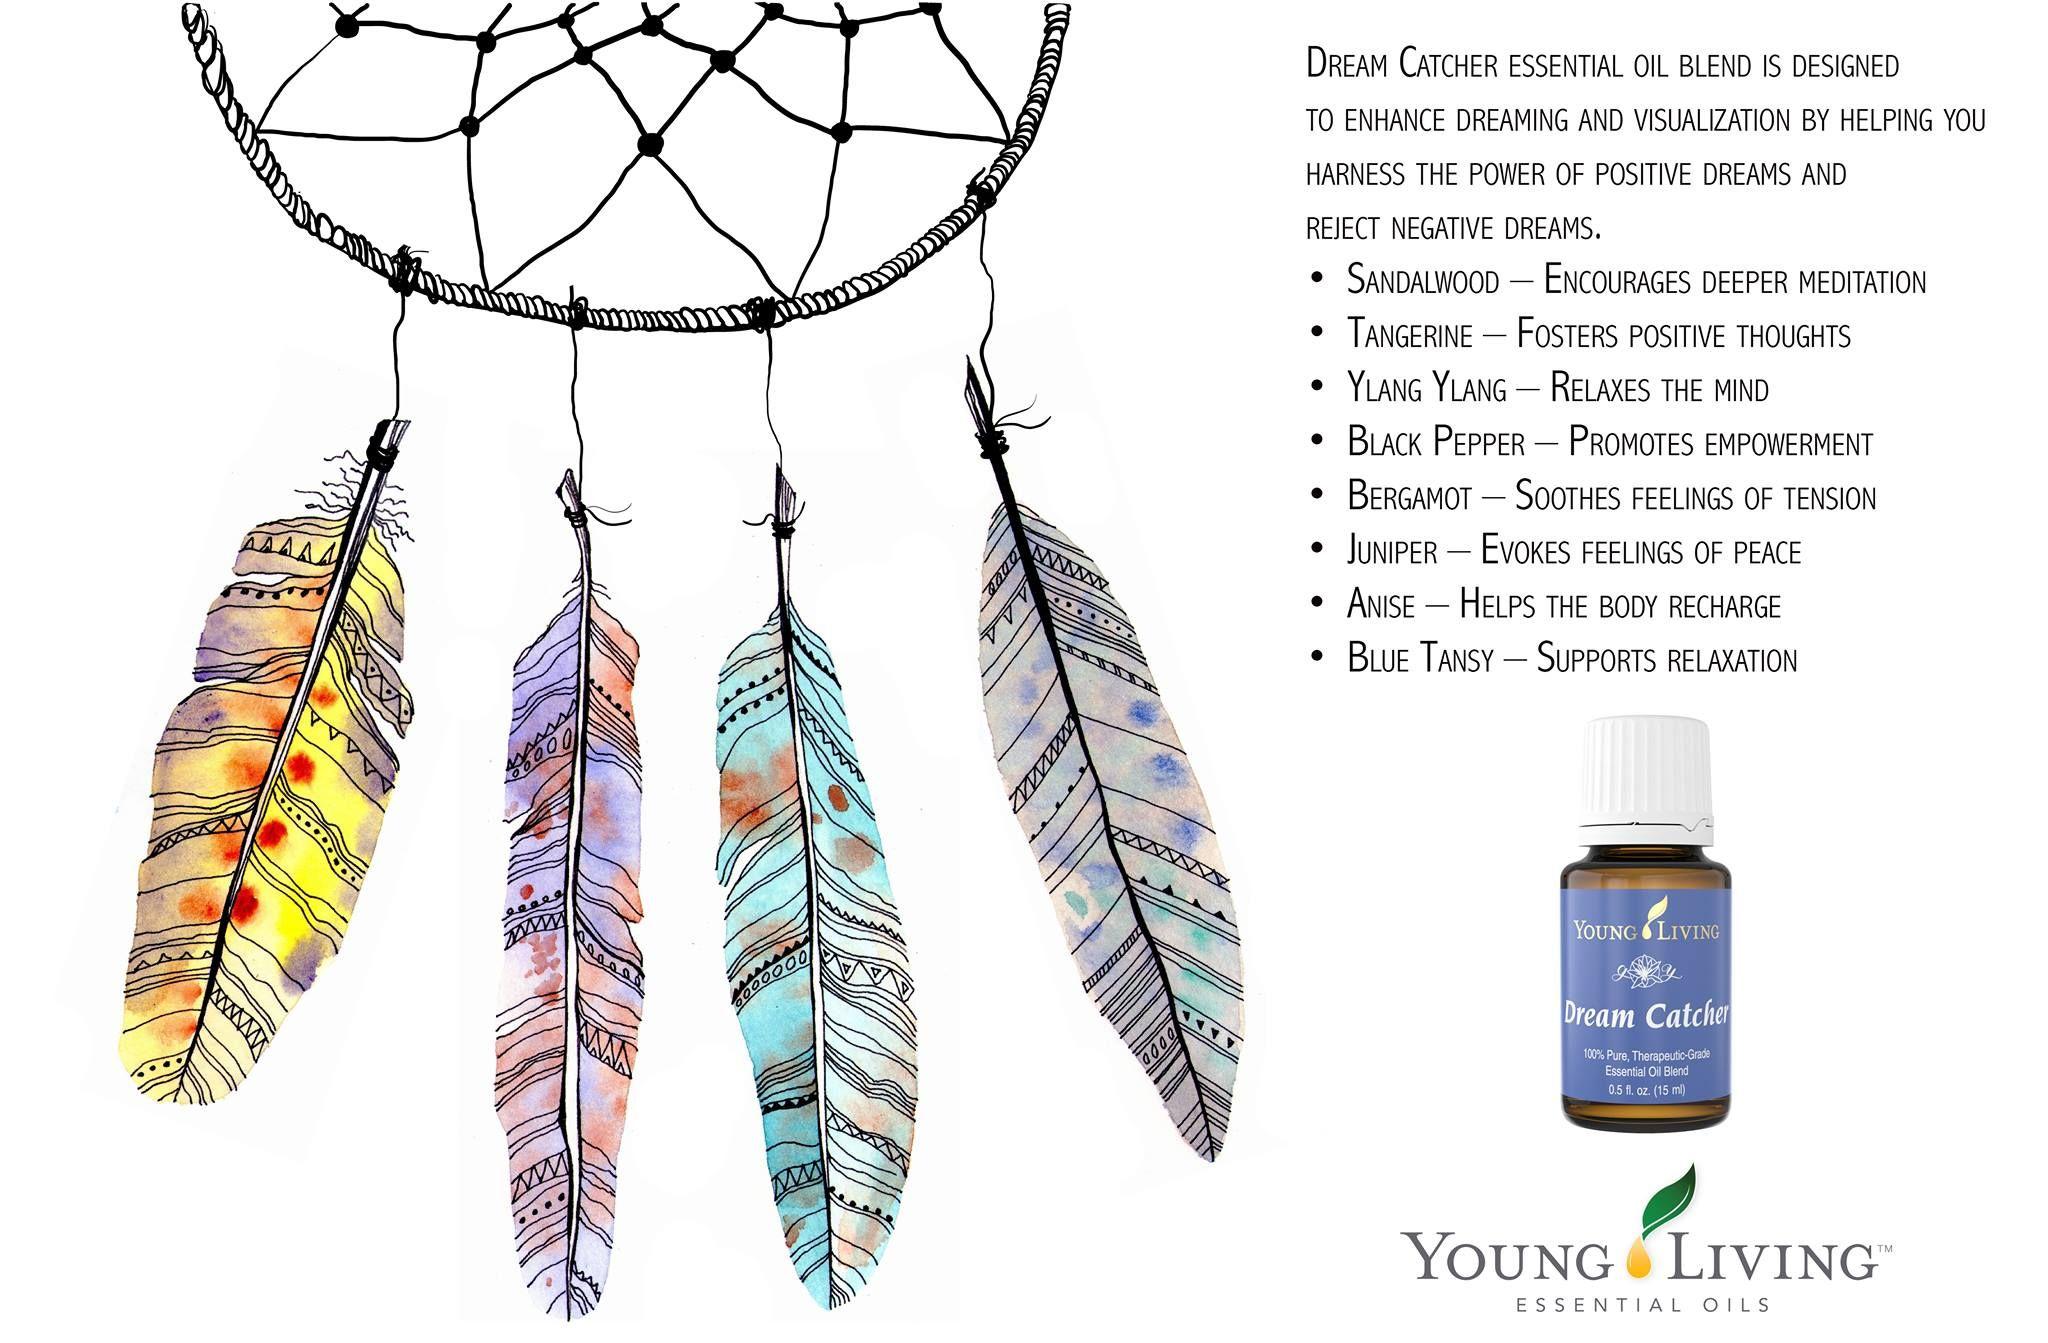 Dream Catcher Essential Oil Blend Is Designed To Enhance Dreaming